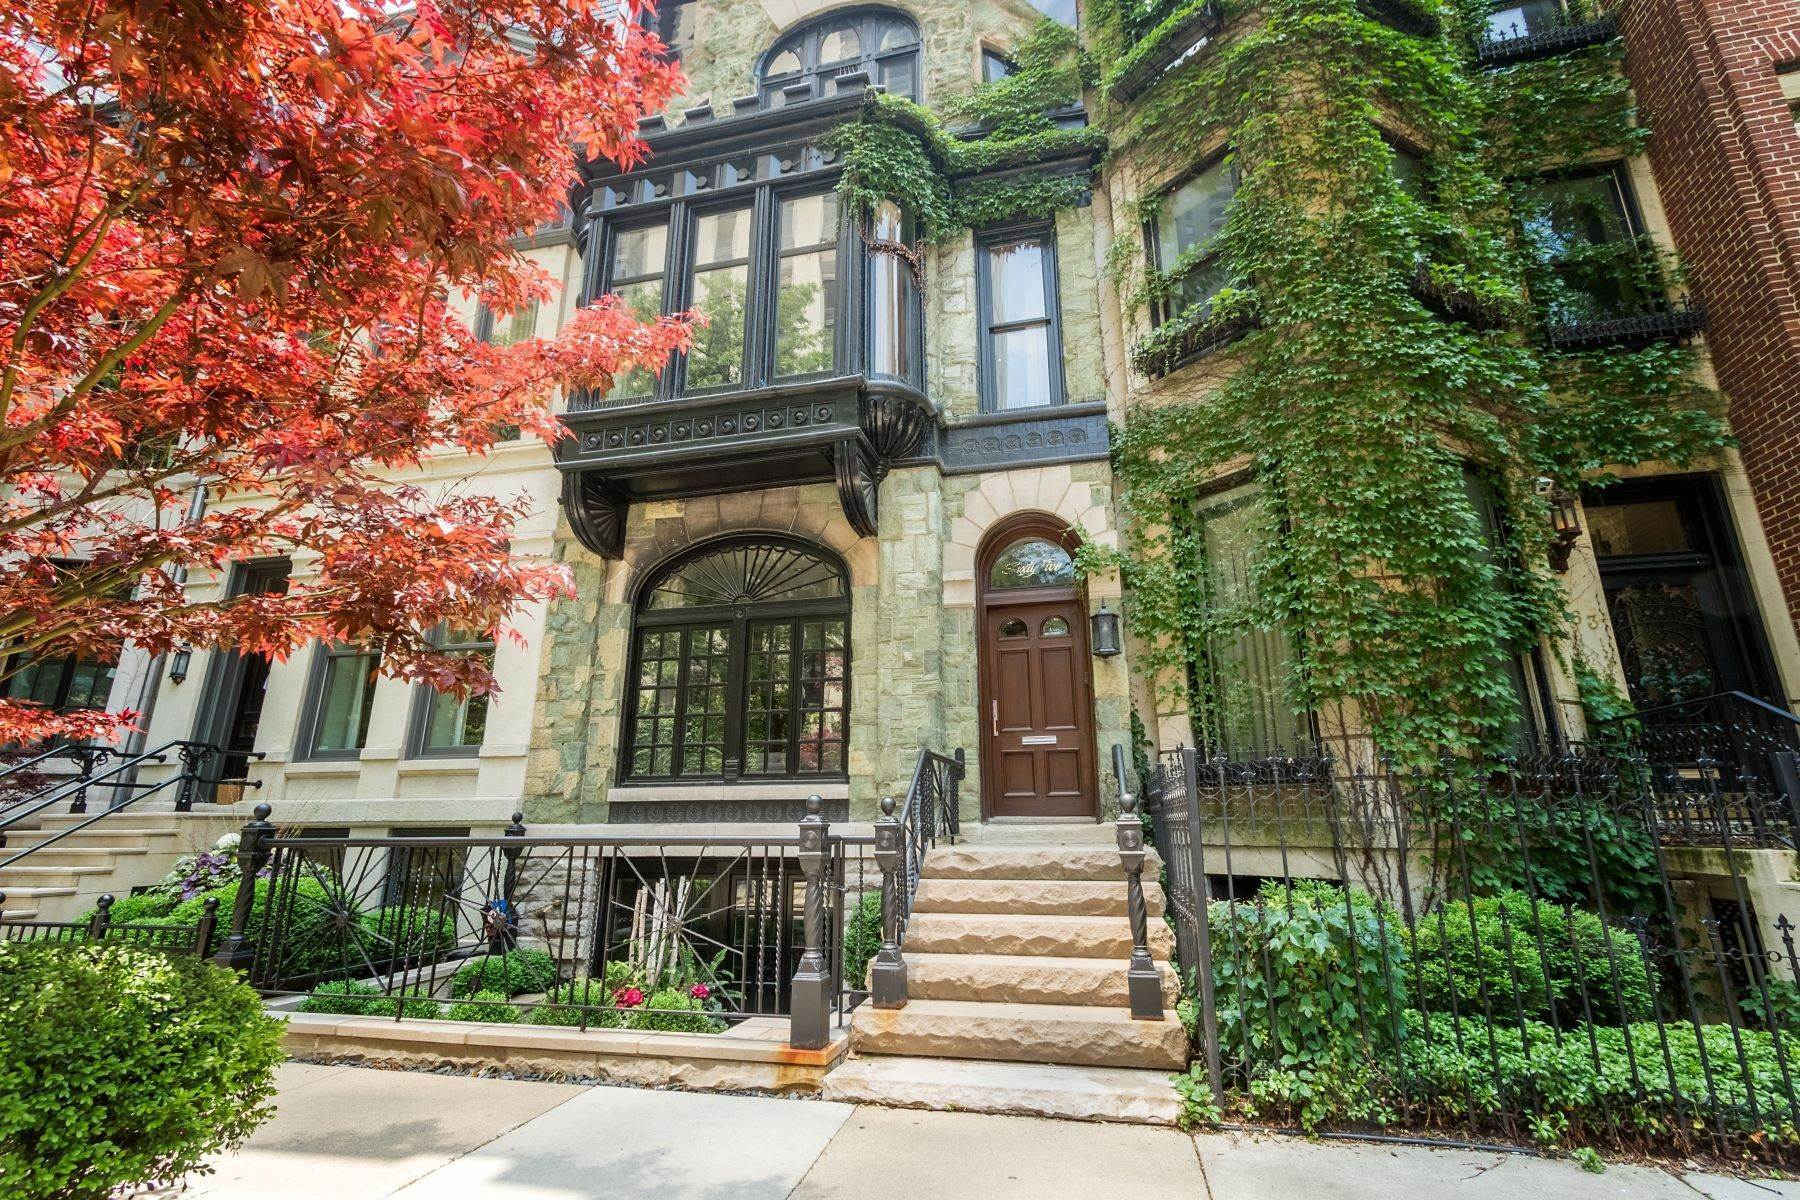 Property for Sale at Magnificent Gold Coast Rowhouse 65 E Bellevue Place Chicago, Illinois 60611 United States